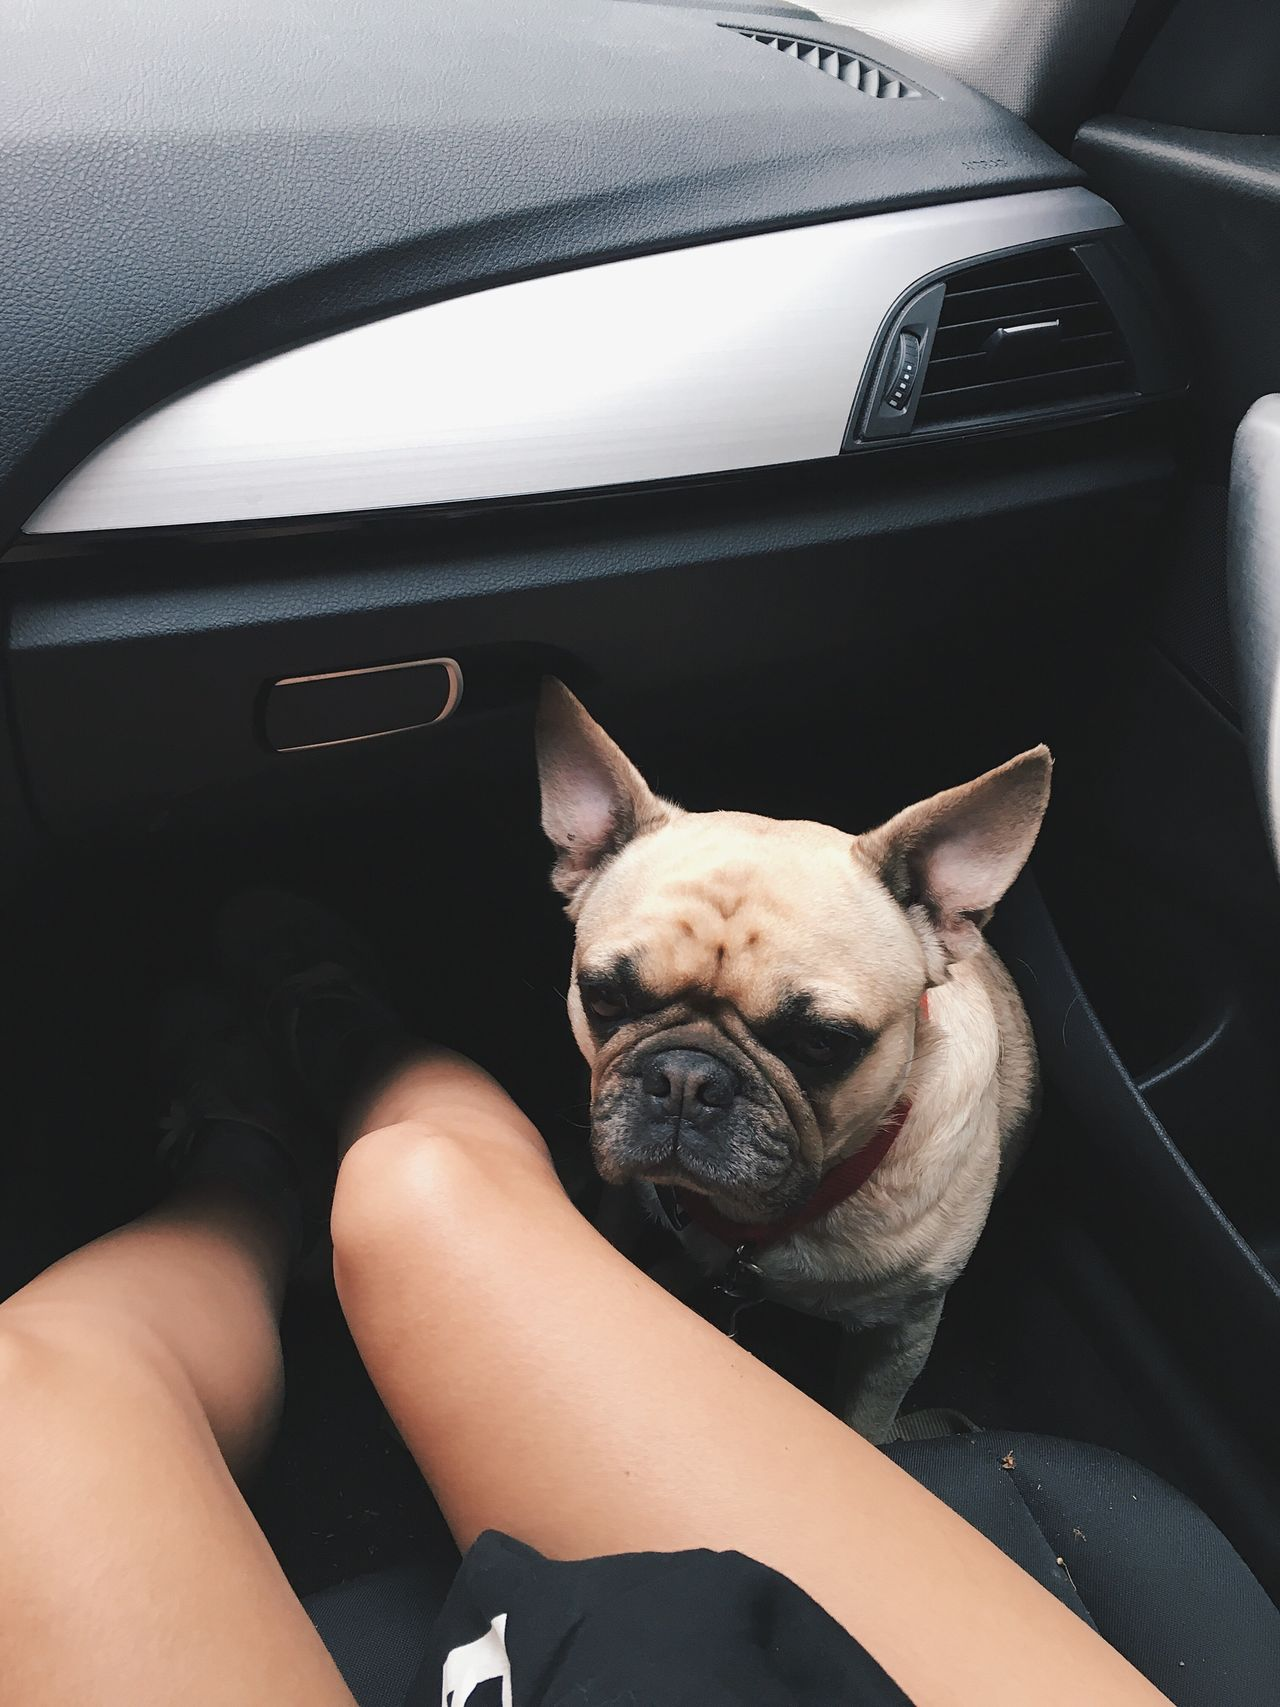 Dog Car Interior Car Vehicle Interior Transportation Mammal Mode Of Transport One Animal Domestic Animals Pets Animal Themes Human Body Part Legs